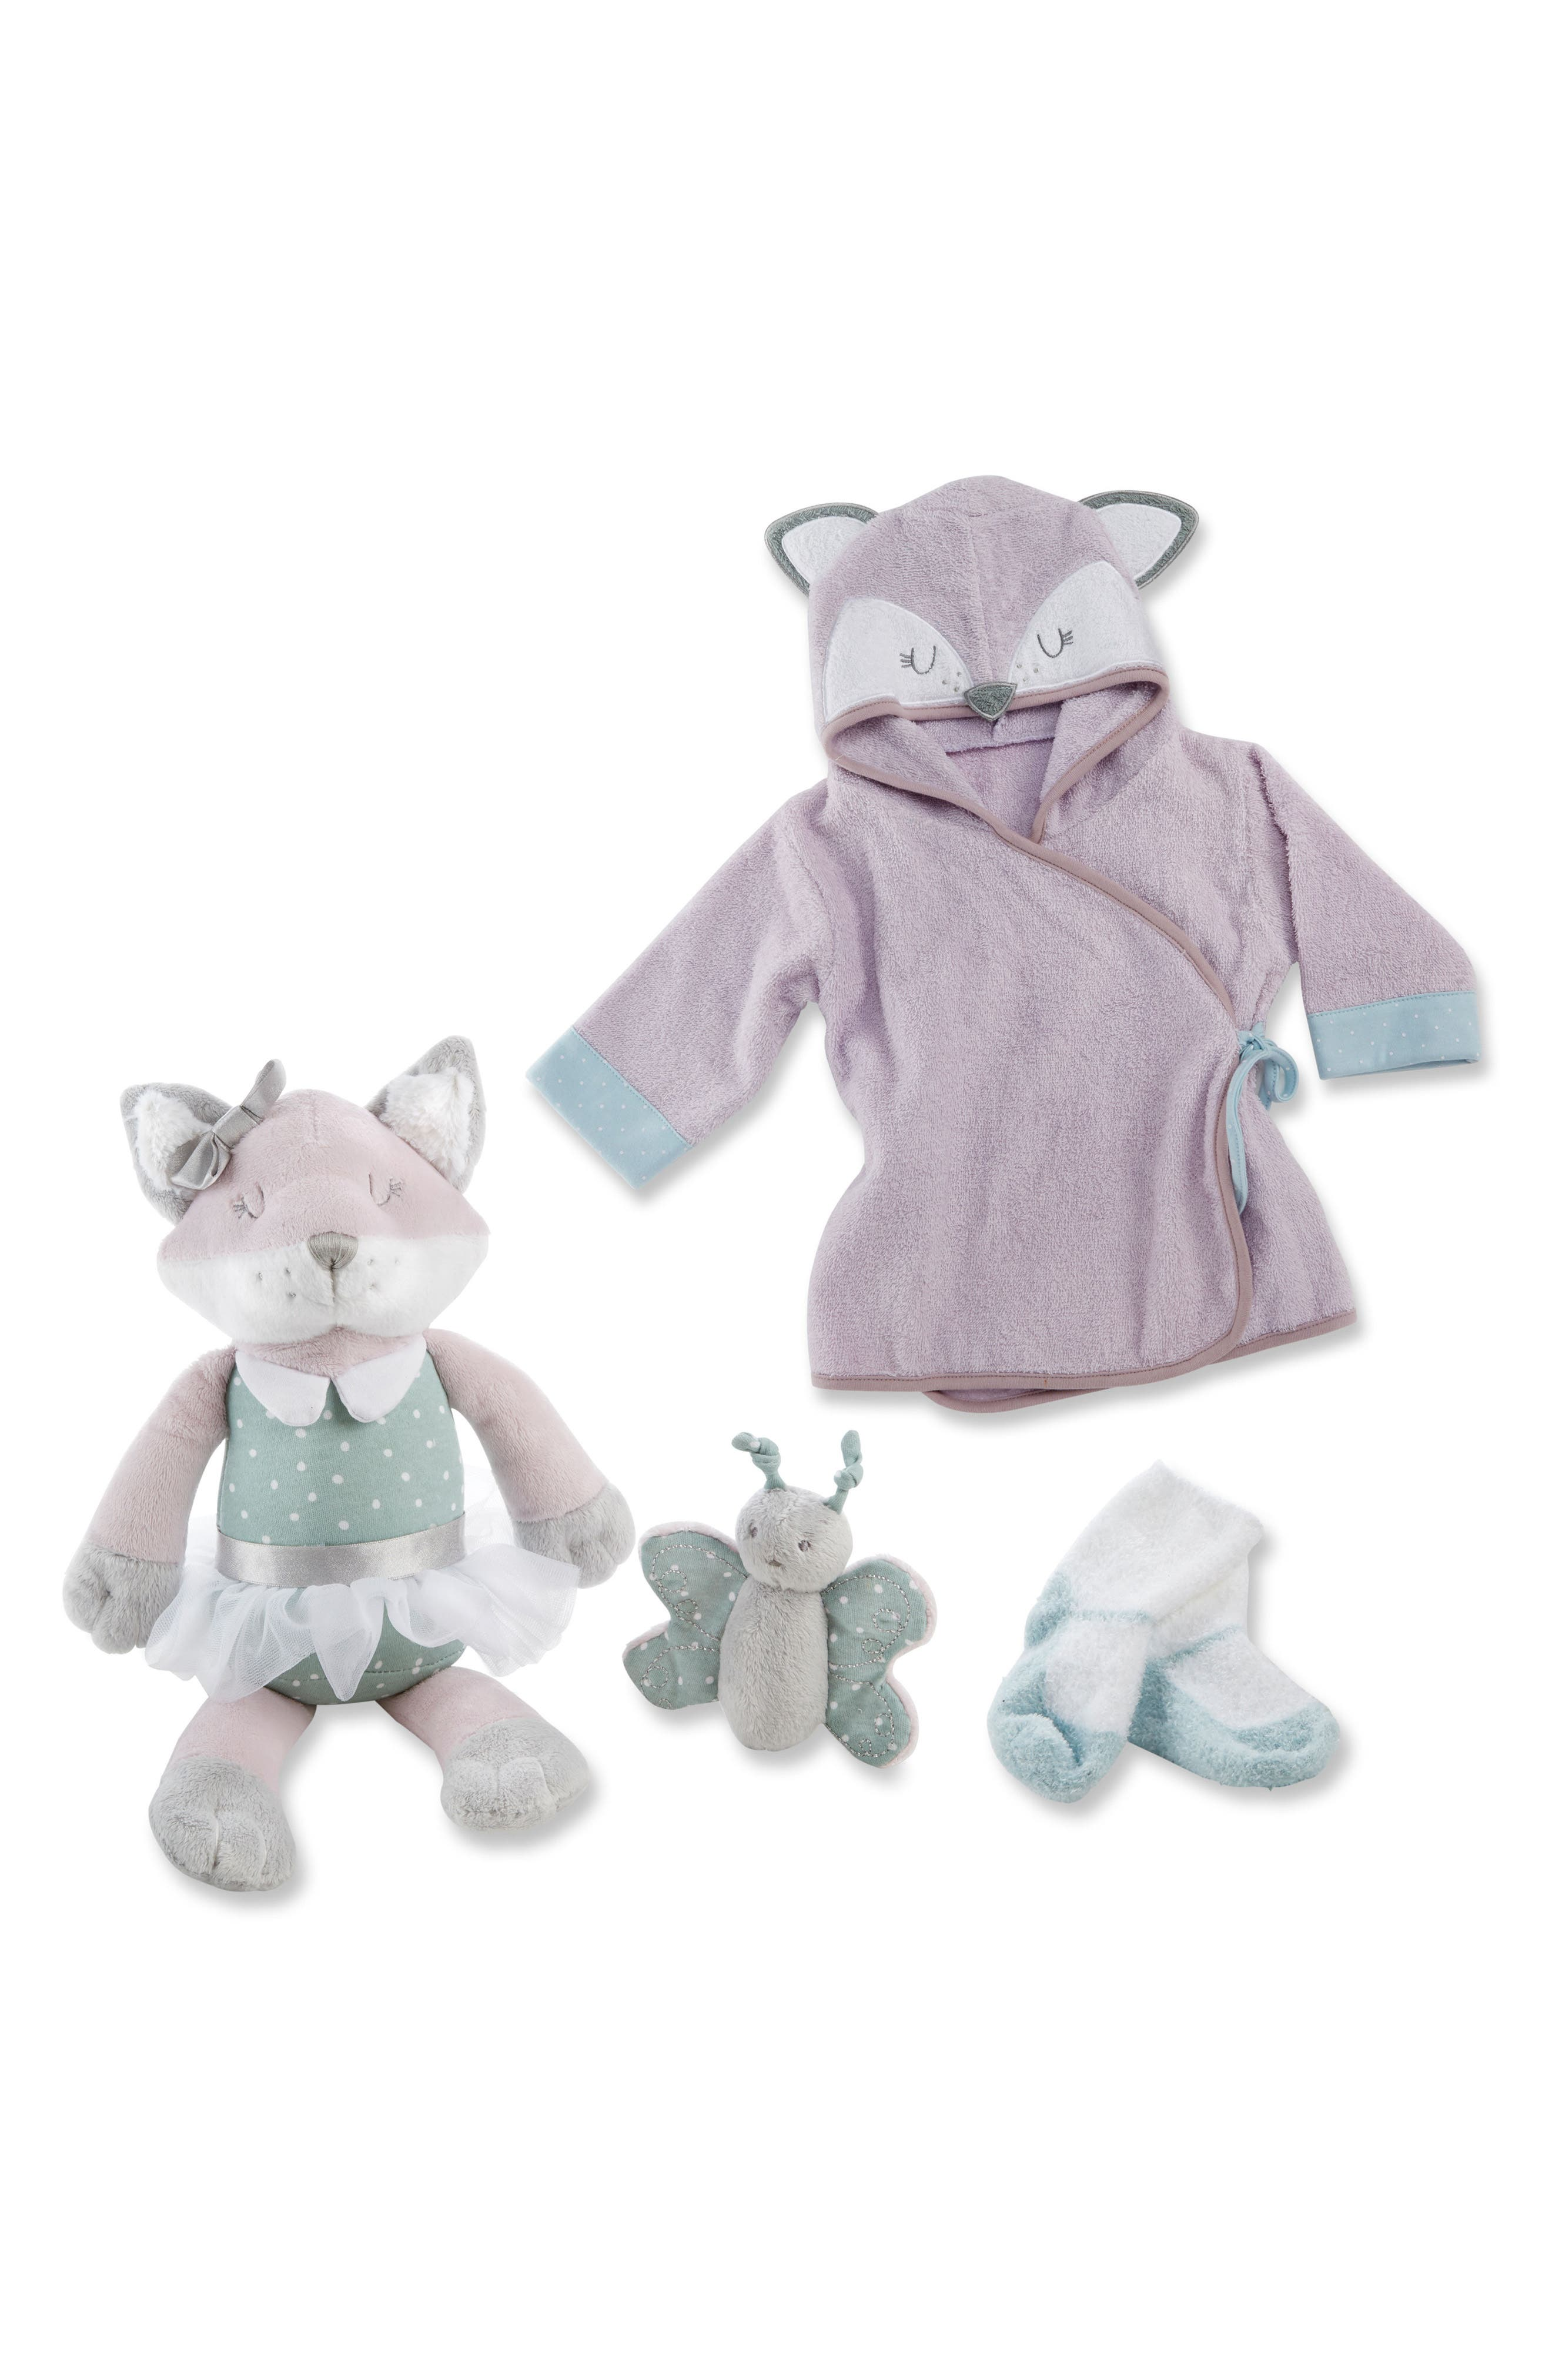 Forest Friends Fox Plush Robe, Fuzzy Socks, Stuffed Animal & Rattle Set,                         Main,                         color, PURPLE/ AQUA/ WHITE